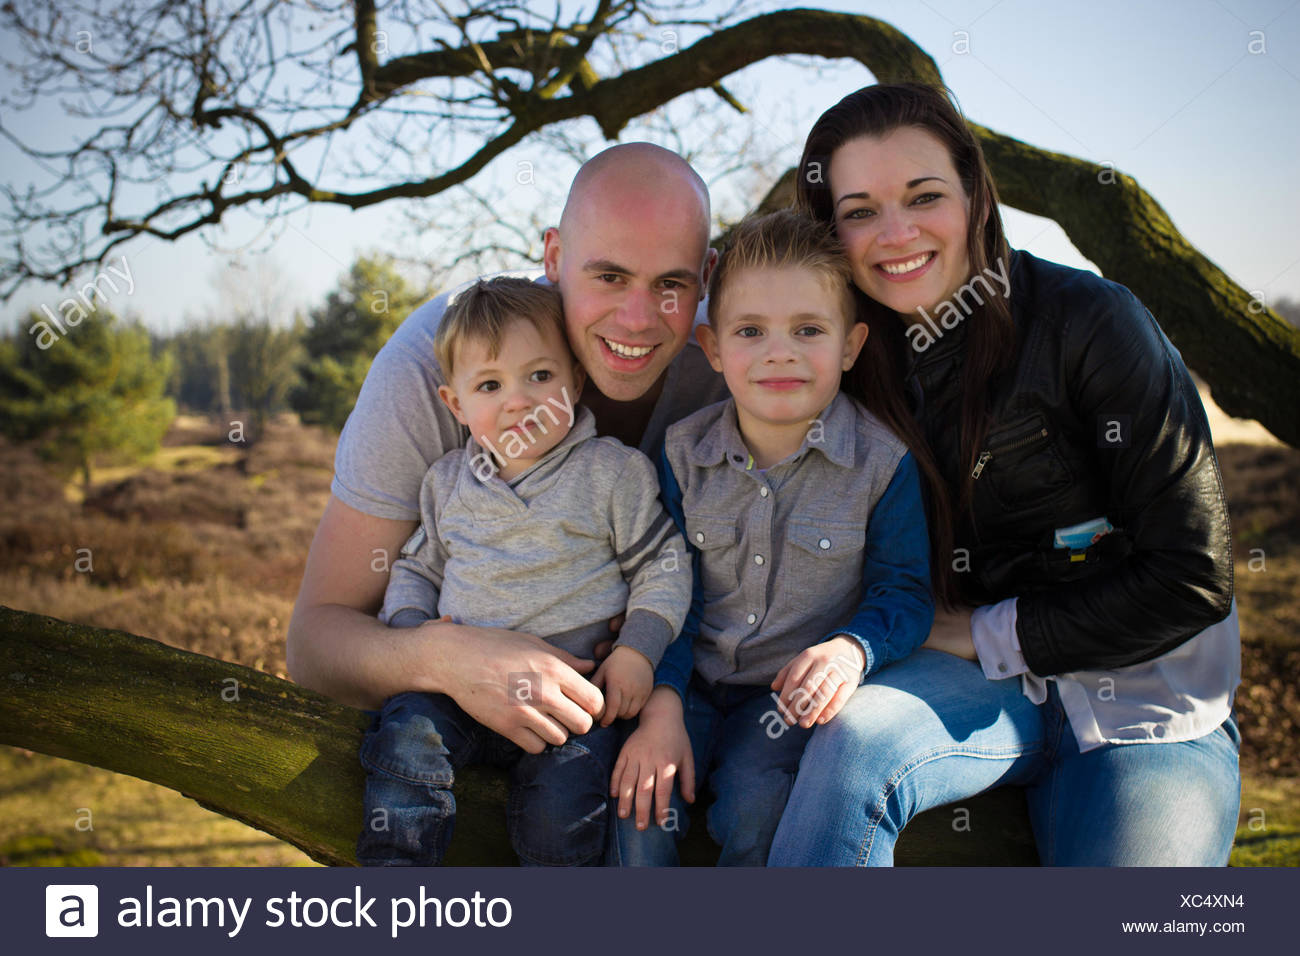 Family portrait outdoors - Stock Image